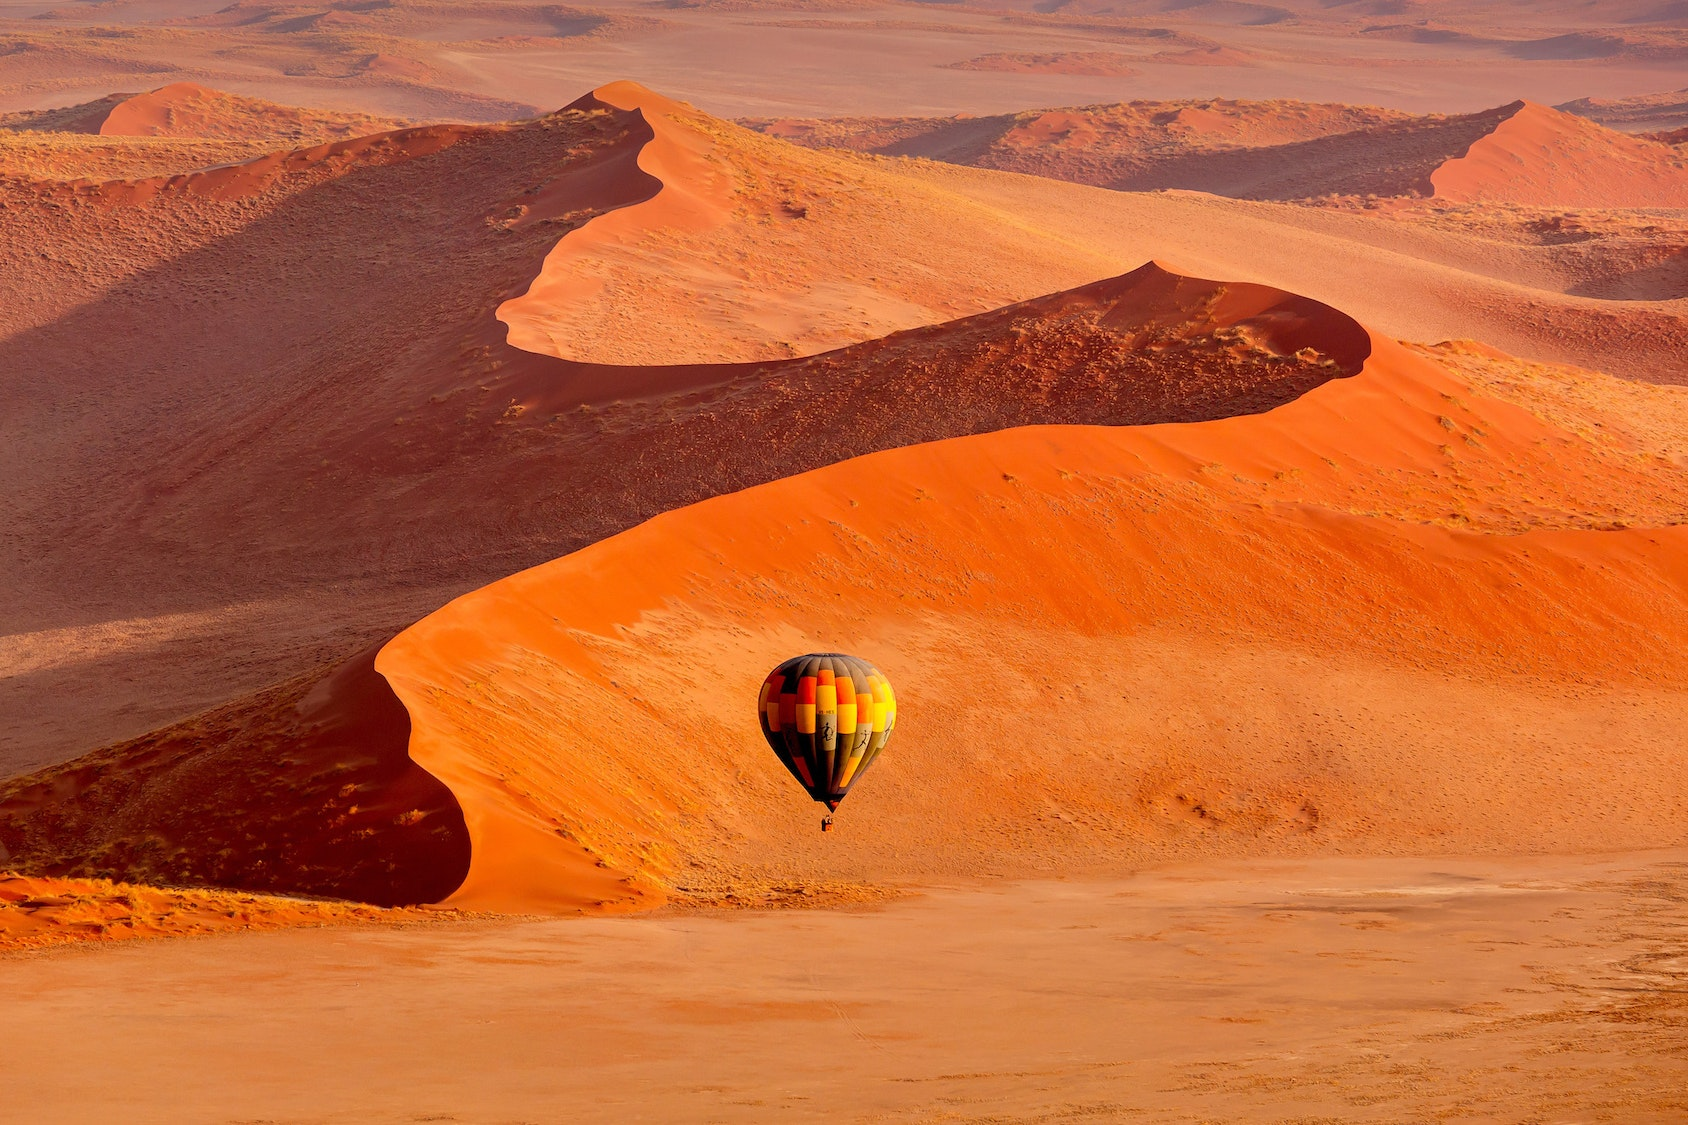 Sossusvlei is a salt and clay pan in the southern part of the Namib Desert.